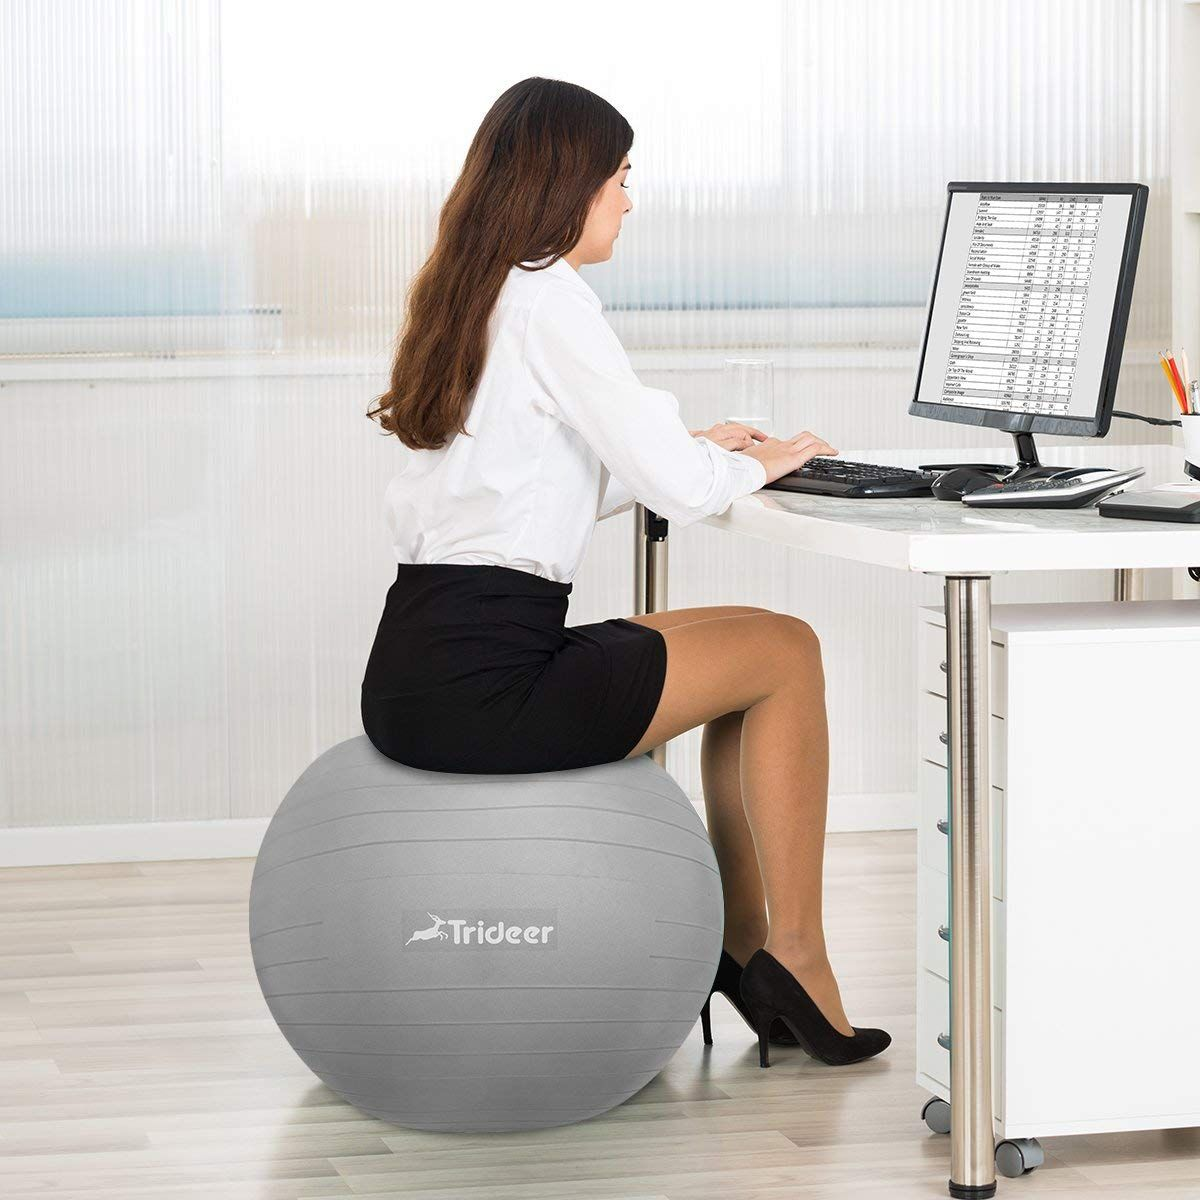 Do Any Of You Actually Use These Yoga Ball Chairs And How Does